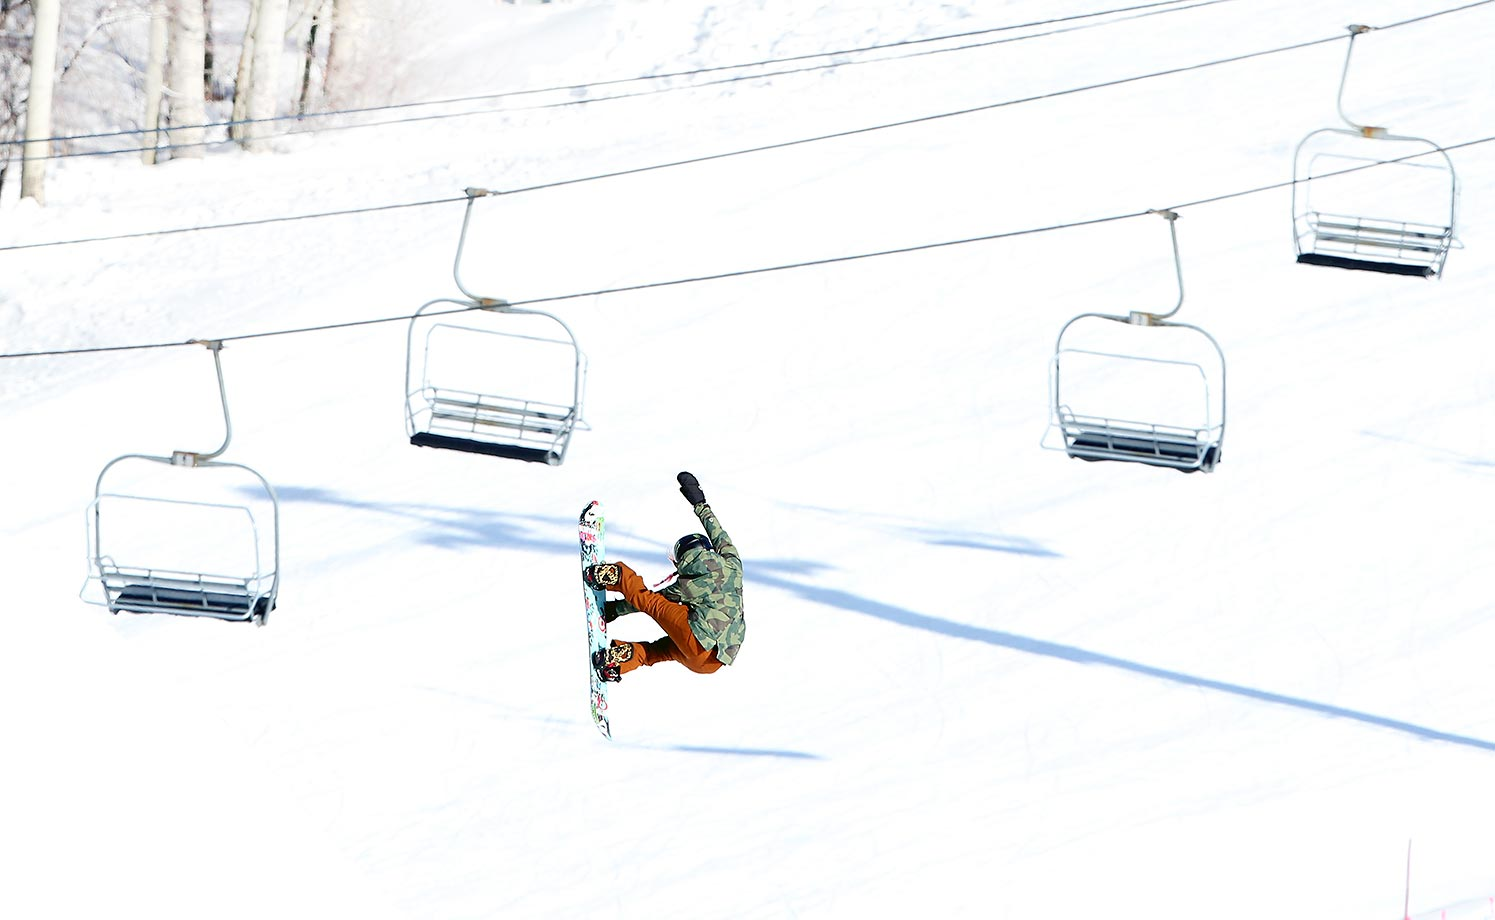 Chloe Kim gets airborne during snowboarding practice.